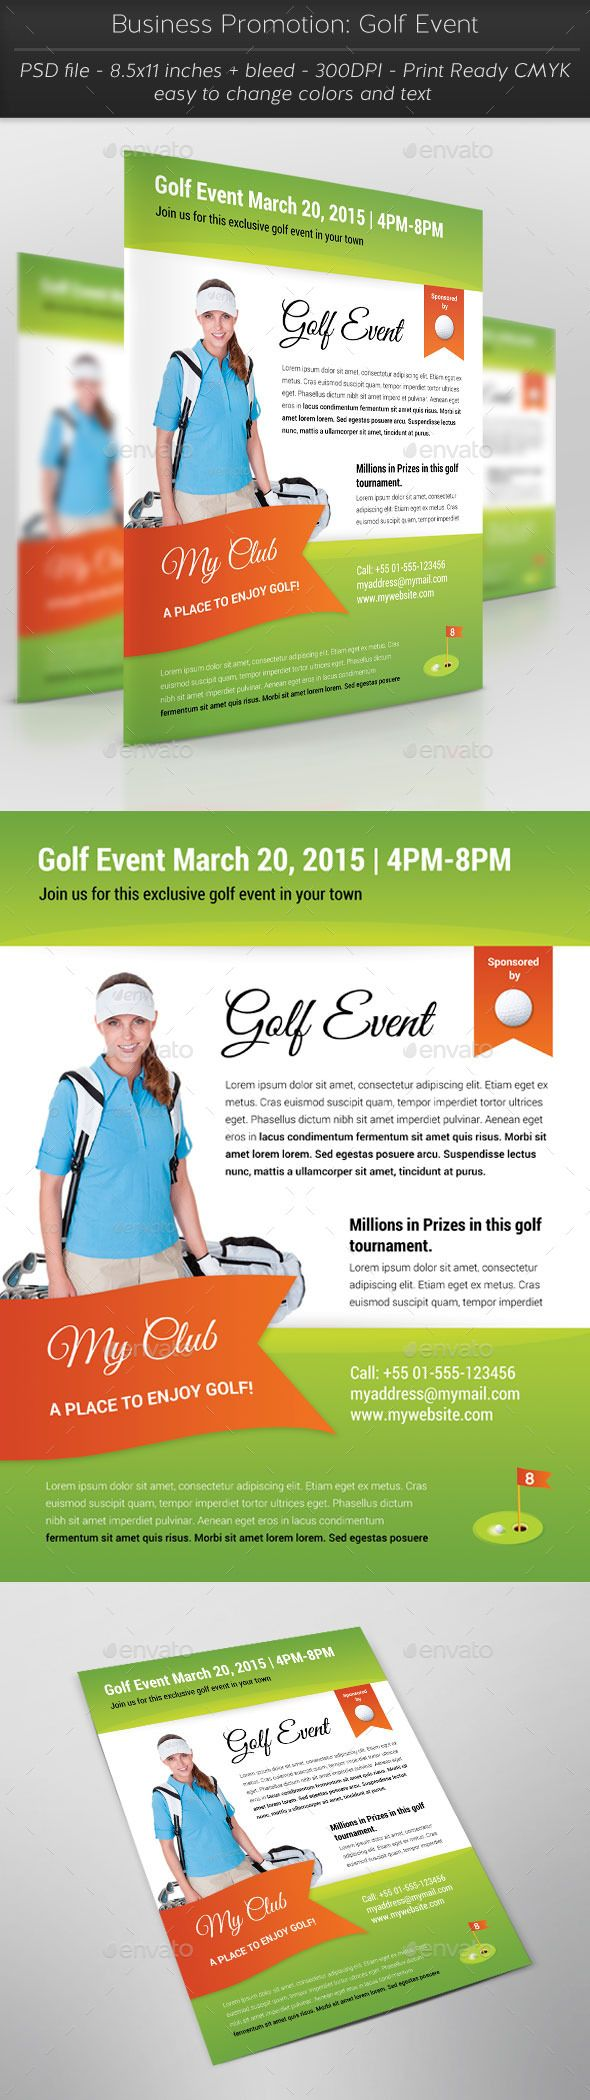 Business Promotion: Golf Event